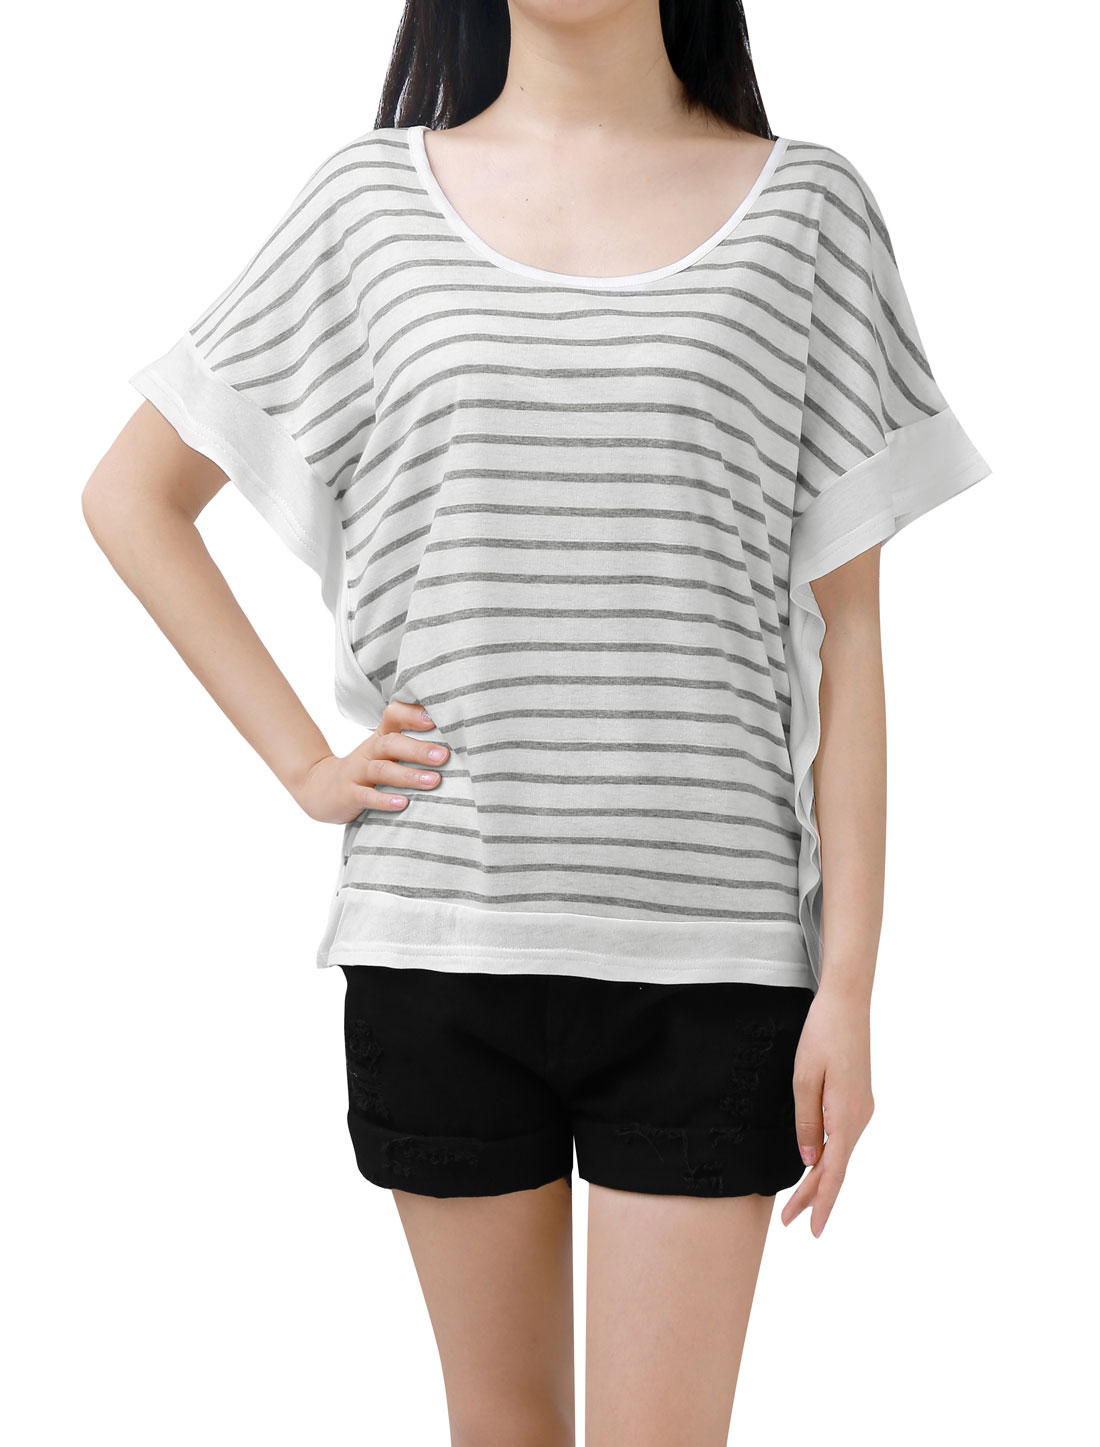 Women Poncho Sleeves Horizontal Stripes T-shirt White Gray M